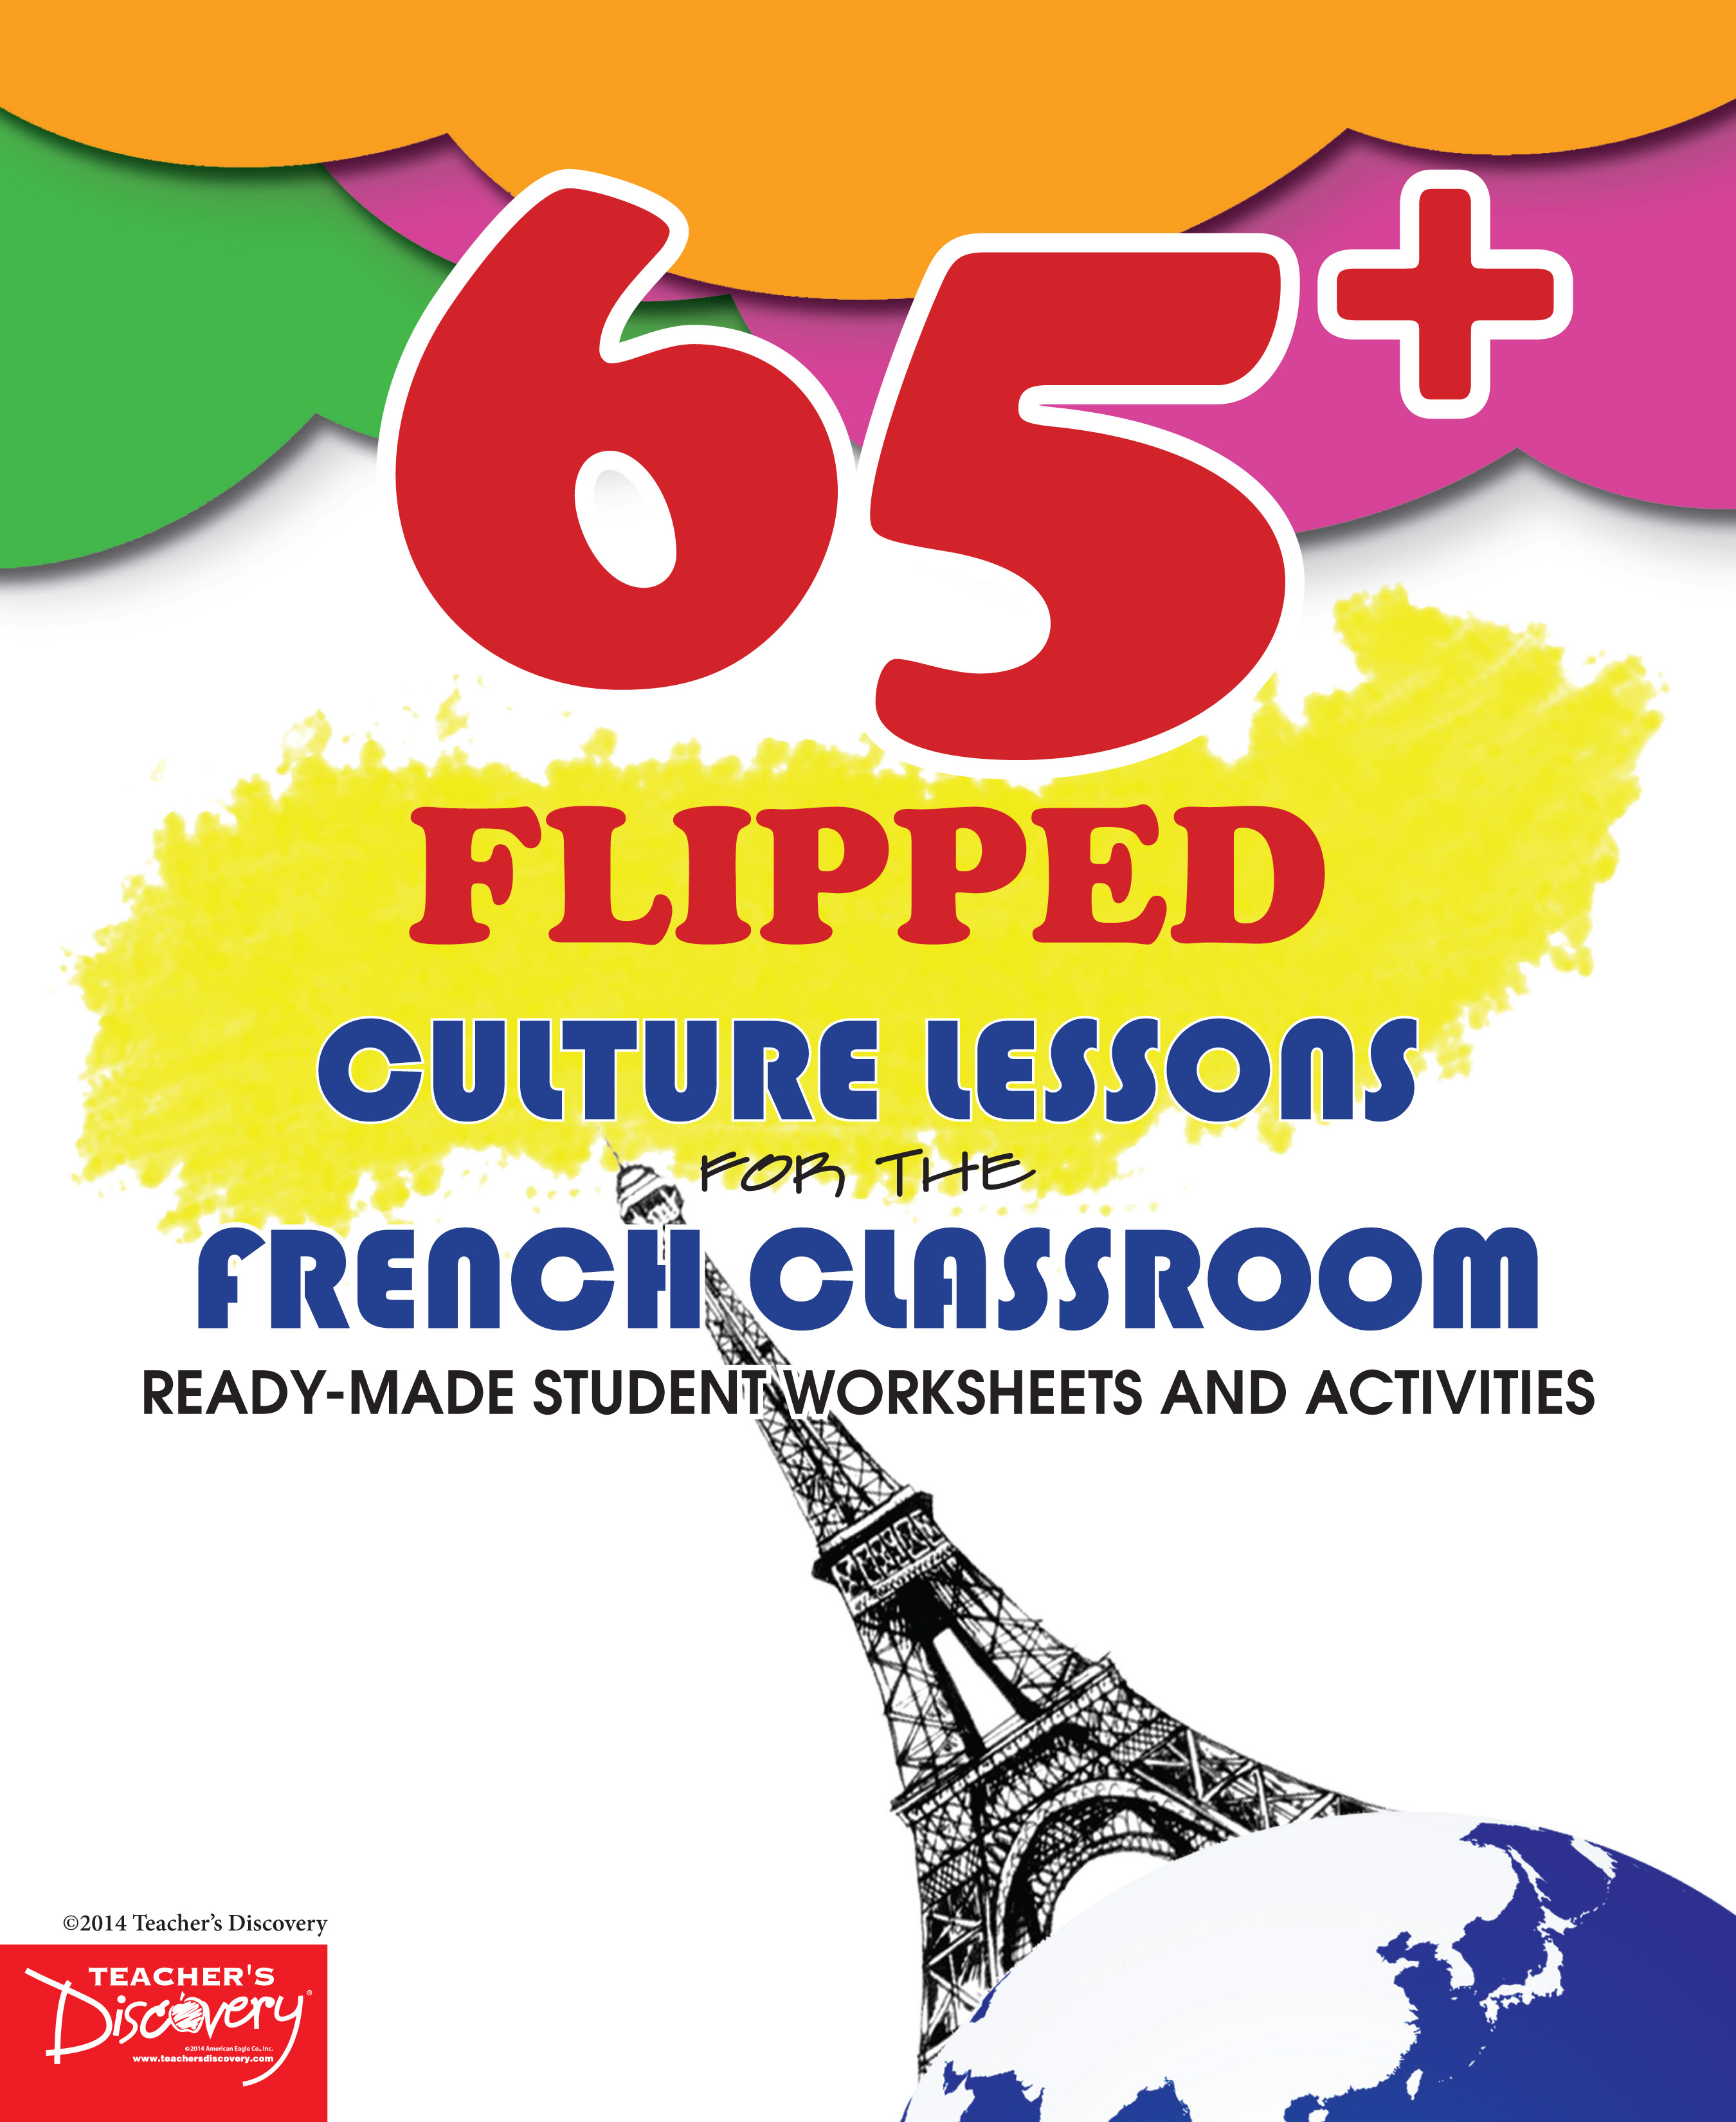 65+ Flipped Culture Lessons for the French Classroom Book